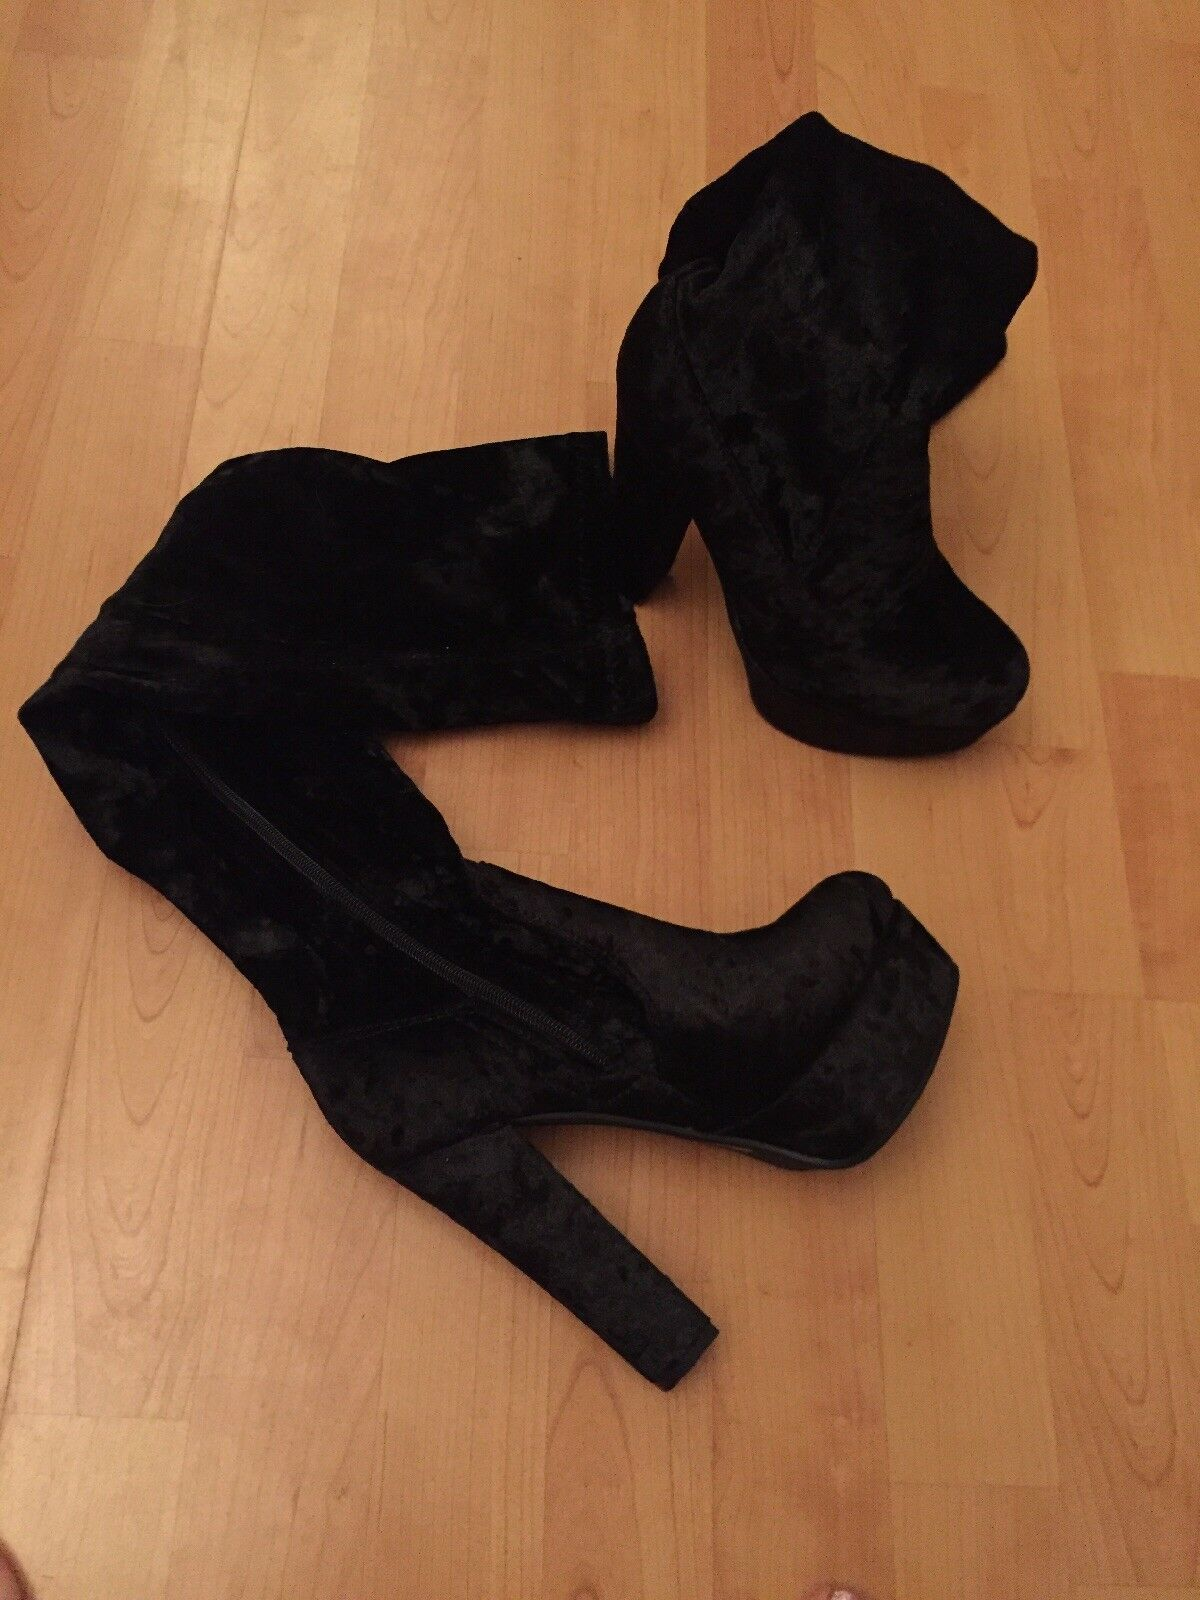 over the knee boots In Black Velvet Uk 5 Eu38 NEW IN BOX FREE POSTAGE